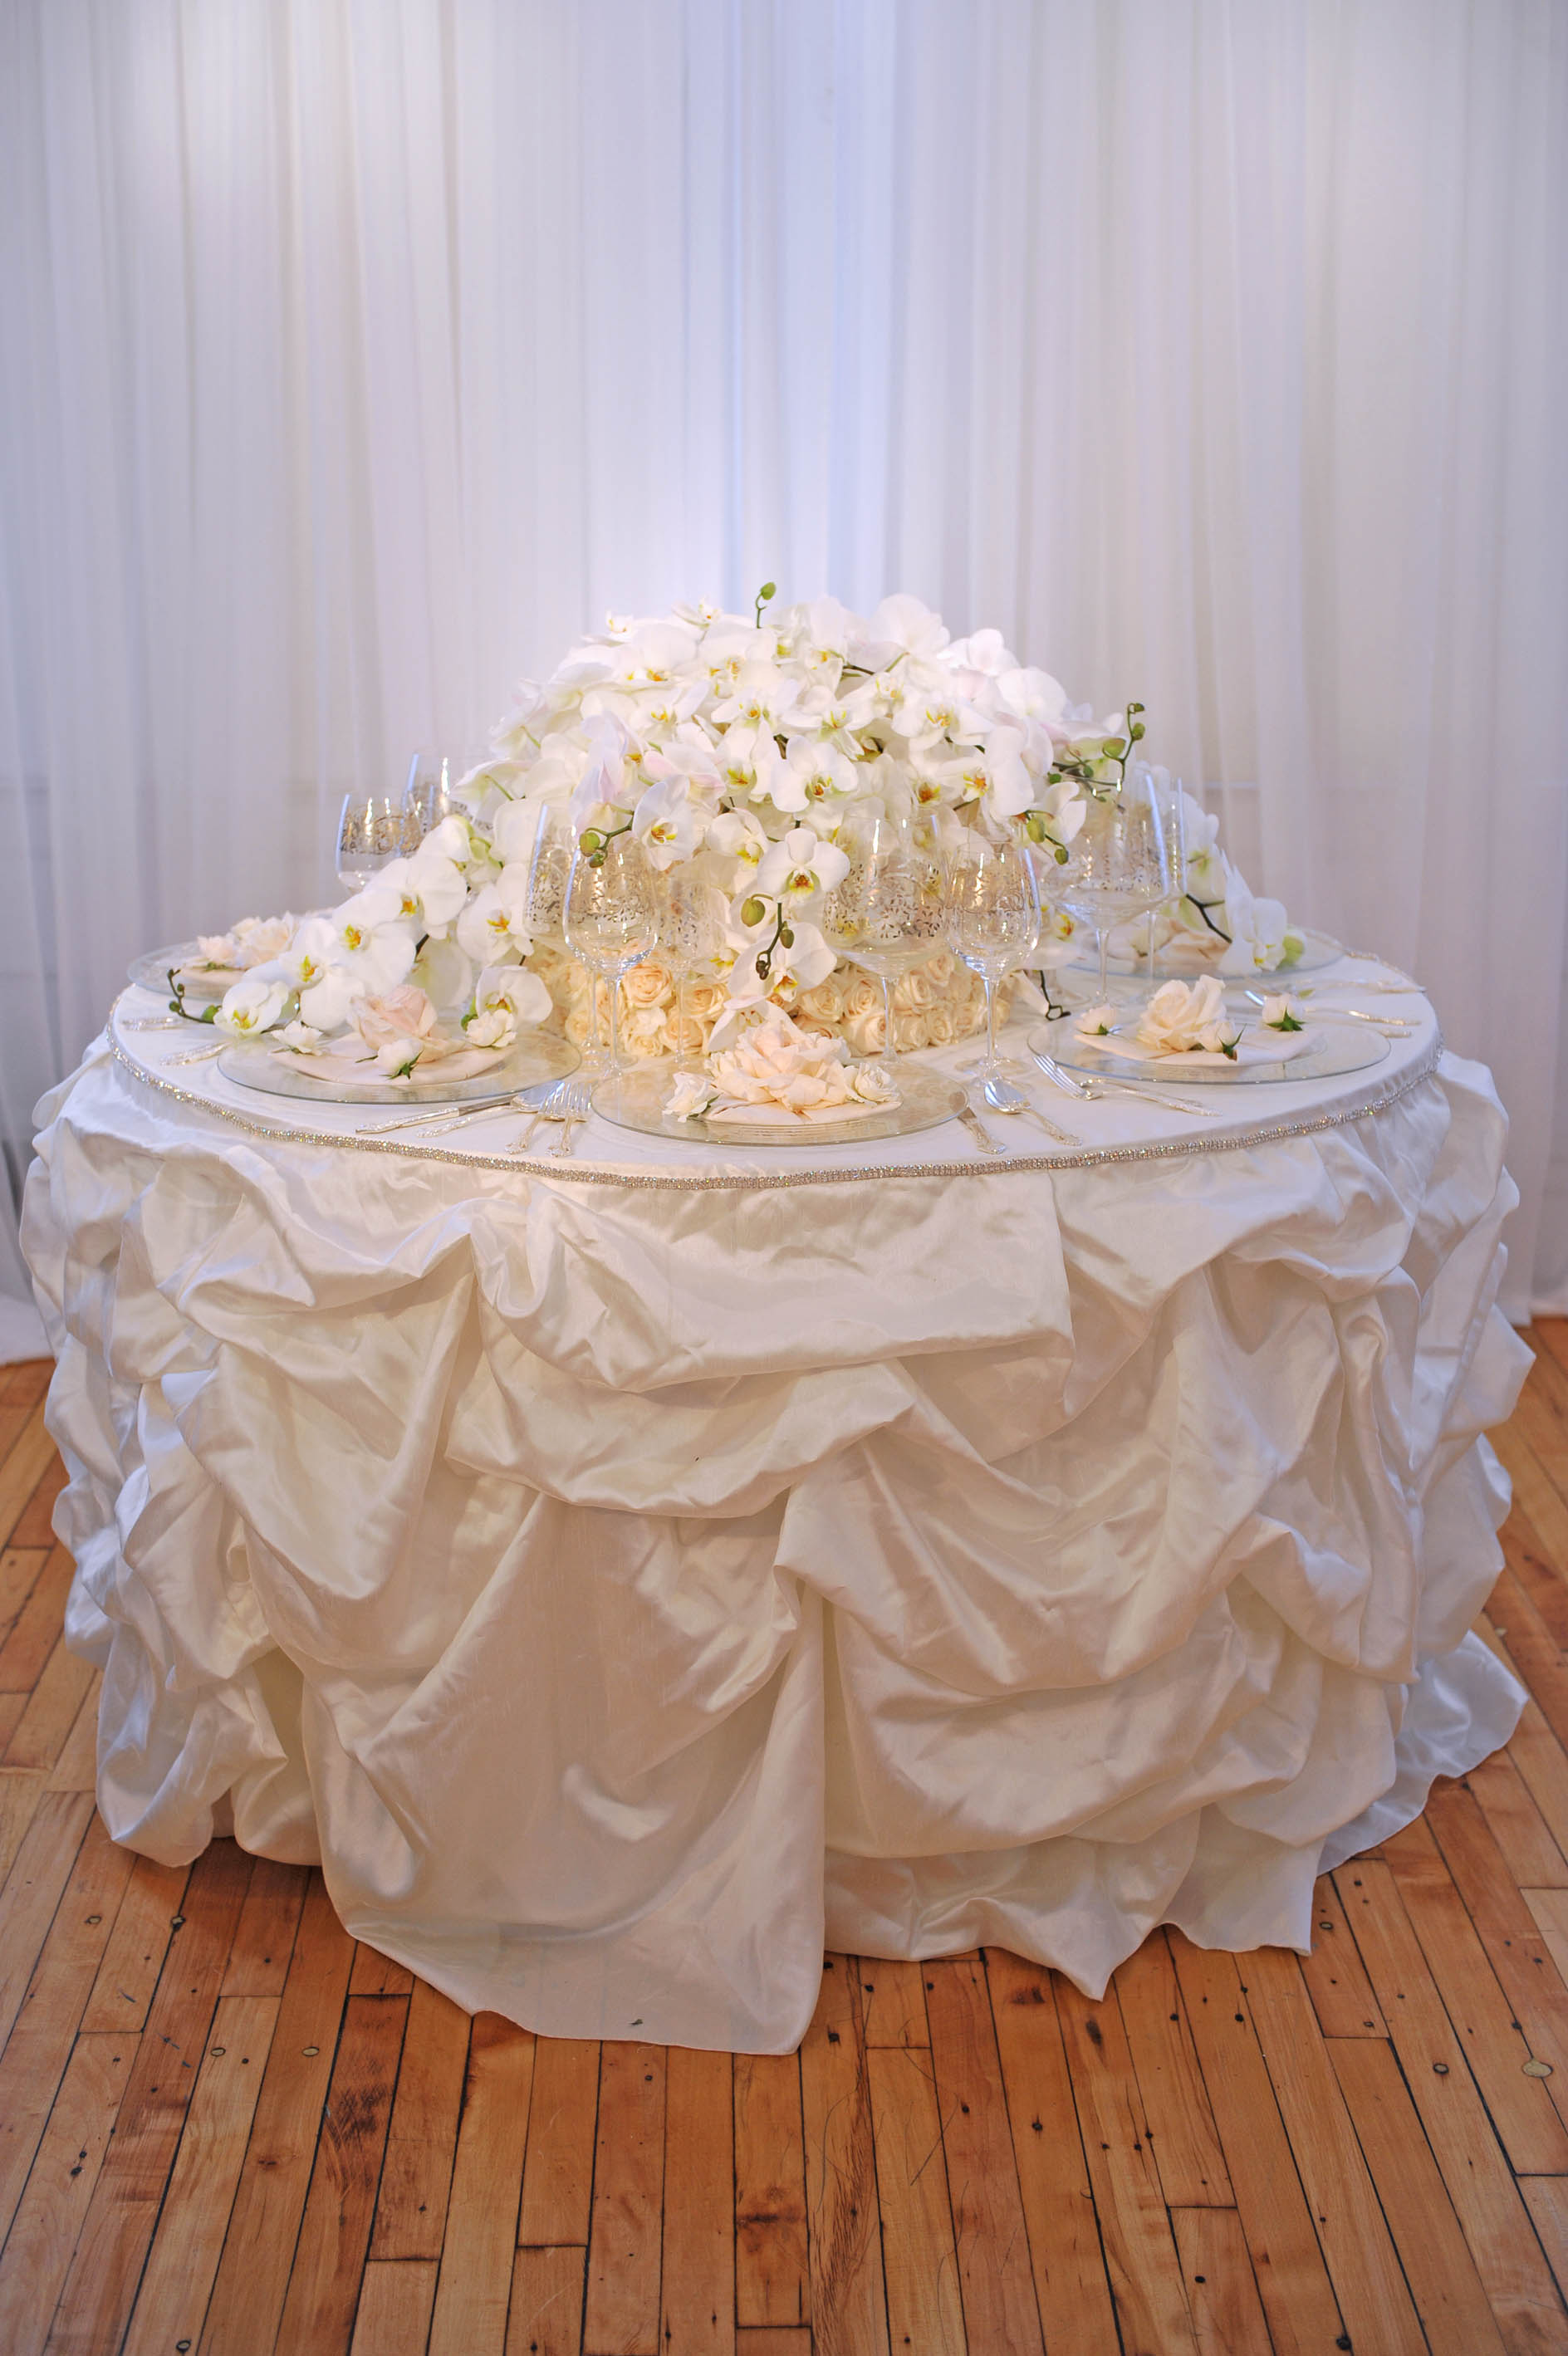 chair covers wedding costs cover for rent frequently asked questions should i go with my chairs